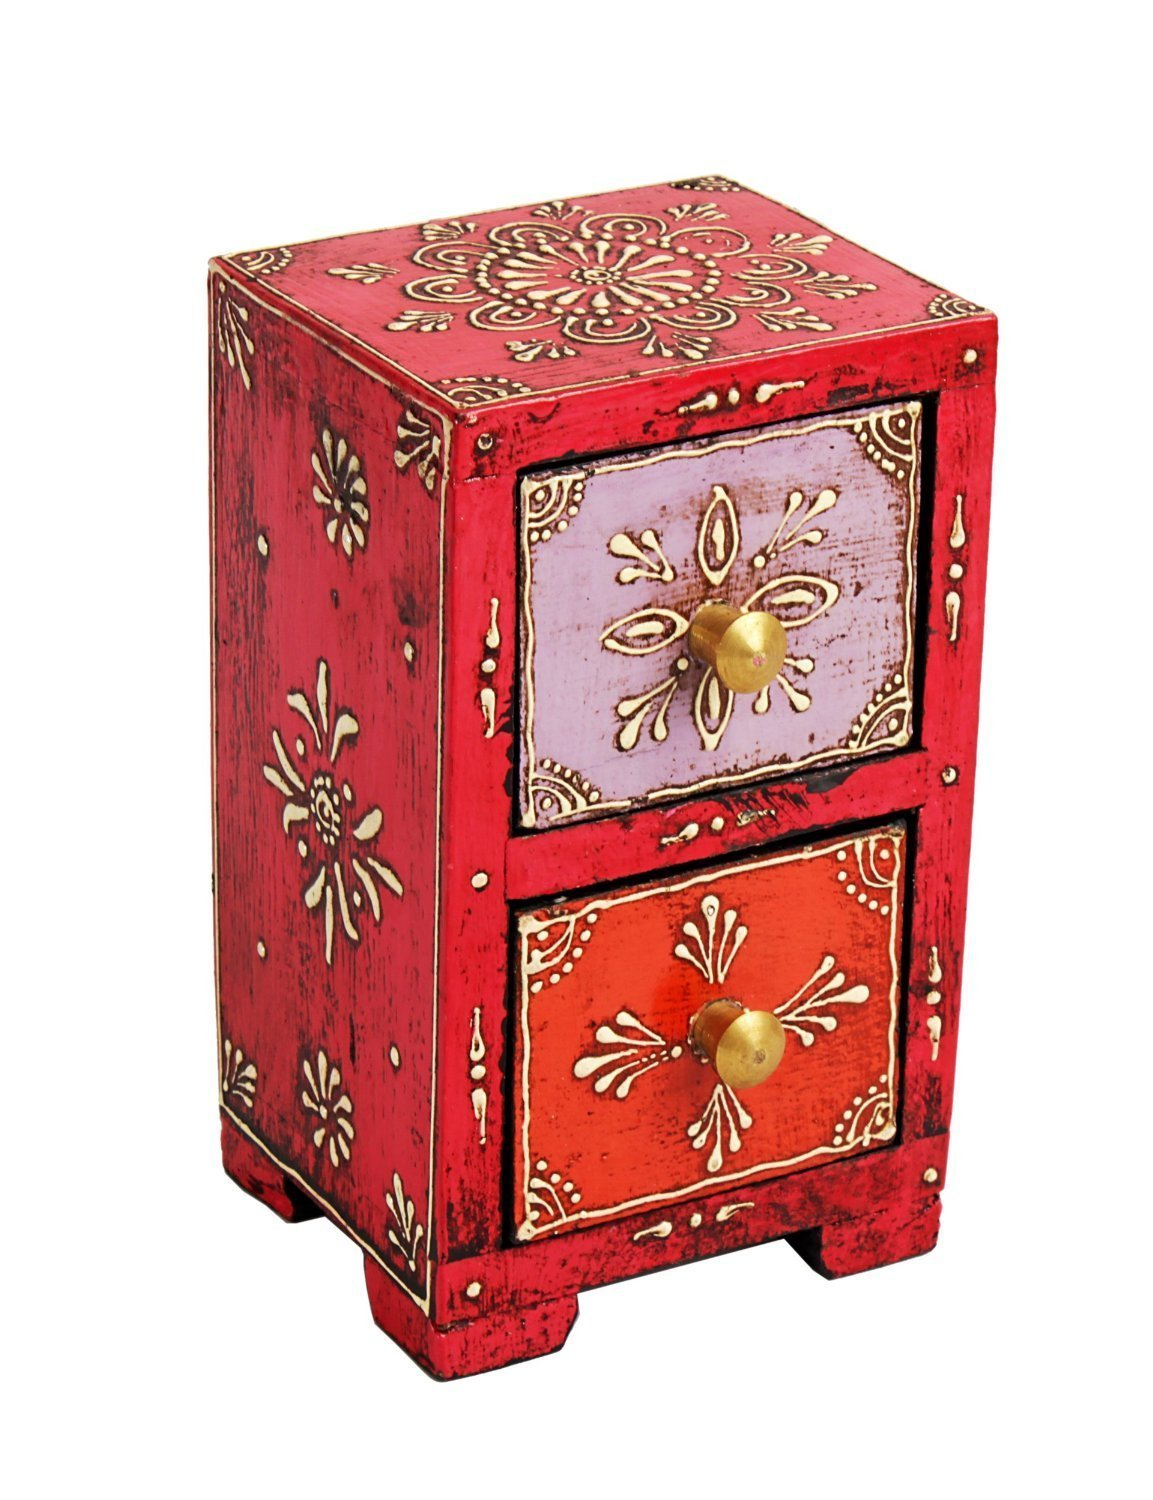 Vibrant Chest of 2 Drawers Hand Painted Wooden Jewelry Trinket Storage Organizer Multi-purpose Holder